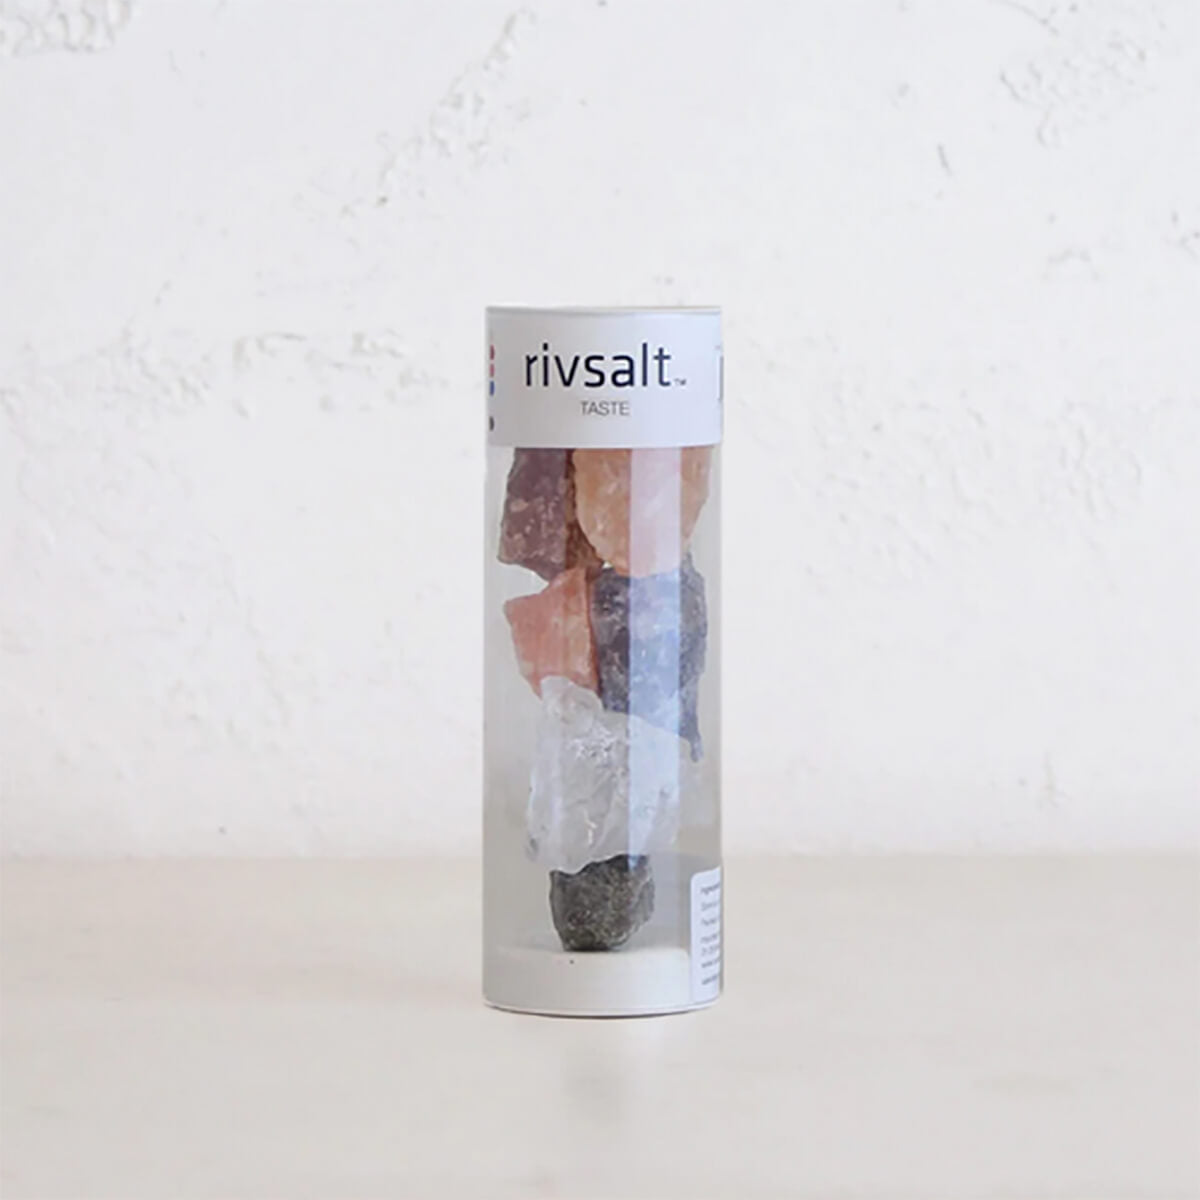 RIVSALT TASTE   |  SELECTION OF SALT ROCKS